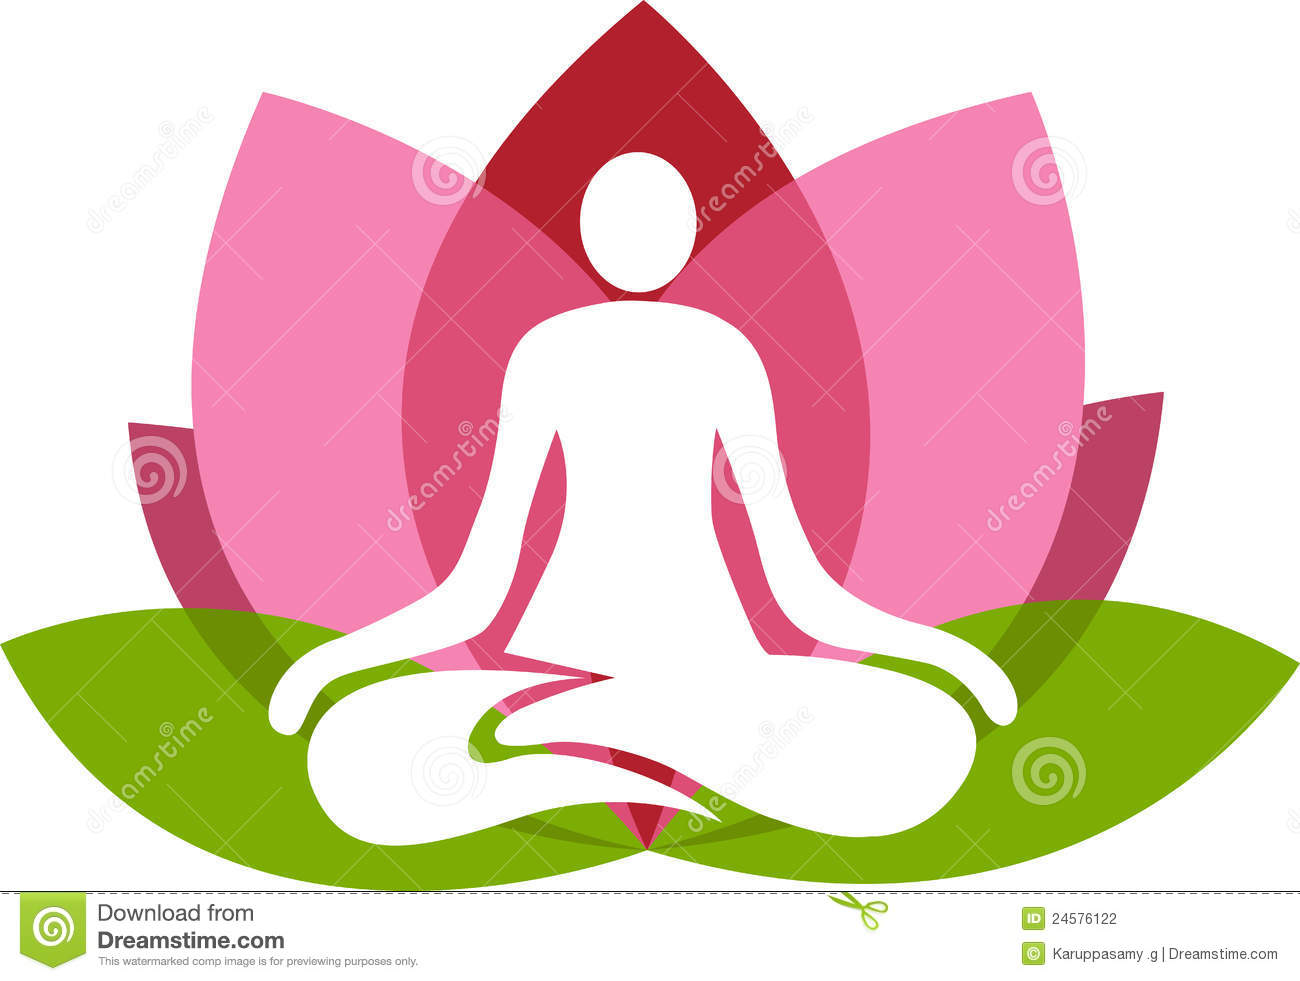 Illustration art of a lotus yoga with isolated background.